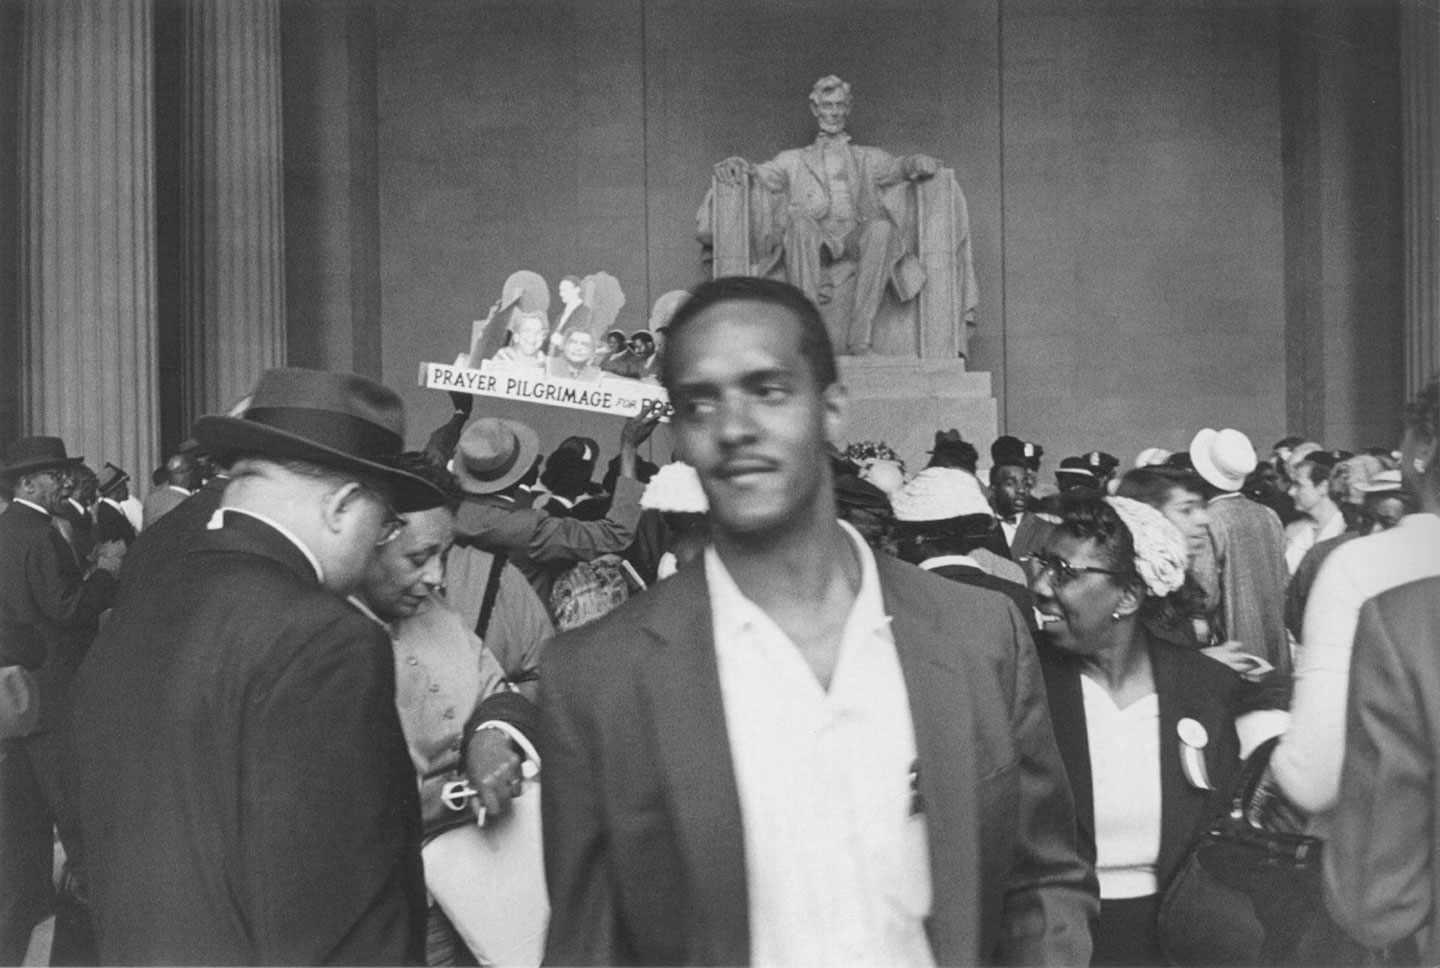 Prayer Pilgrimage for Freedom: Photographs by Lee Friedlander [SIGNED]